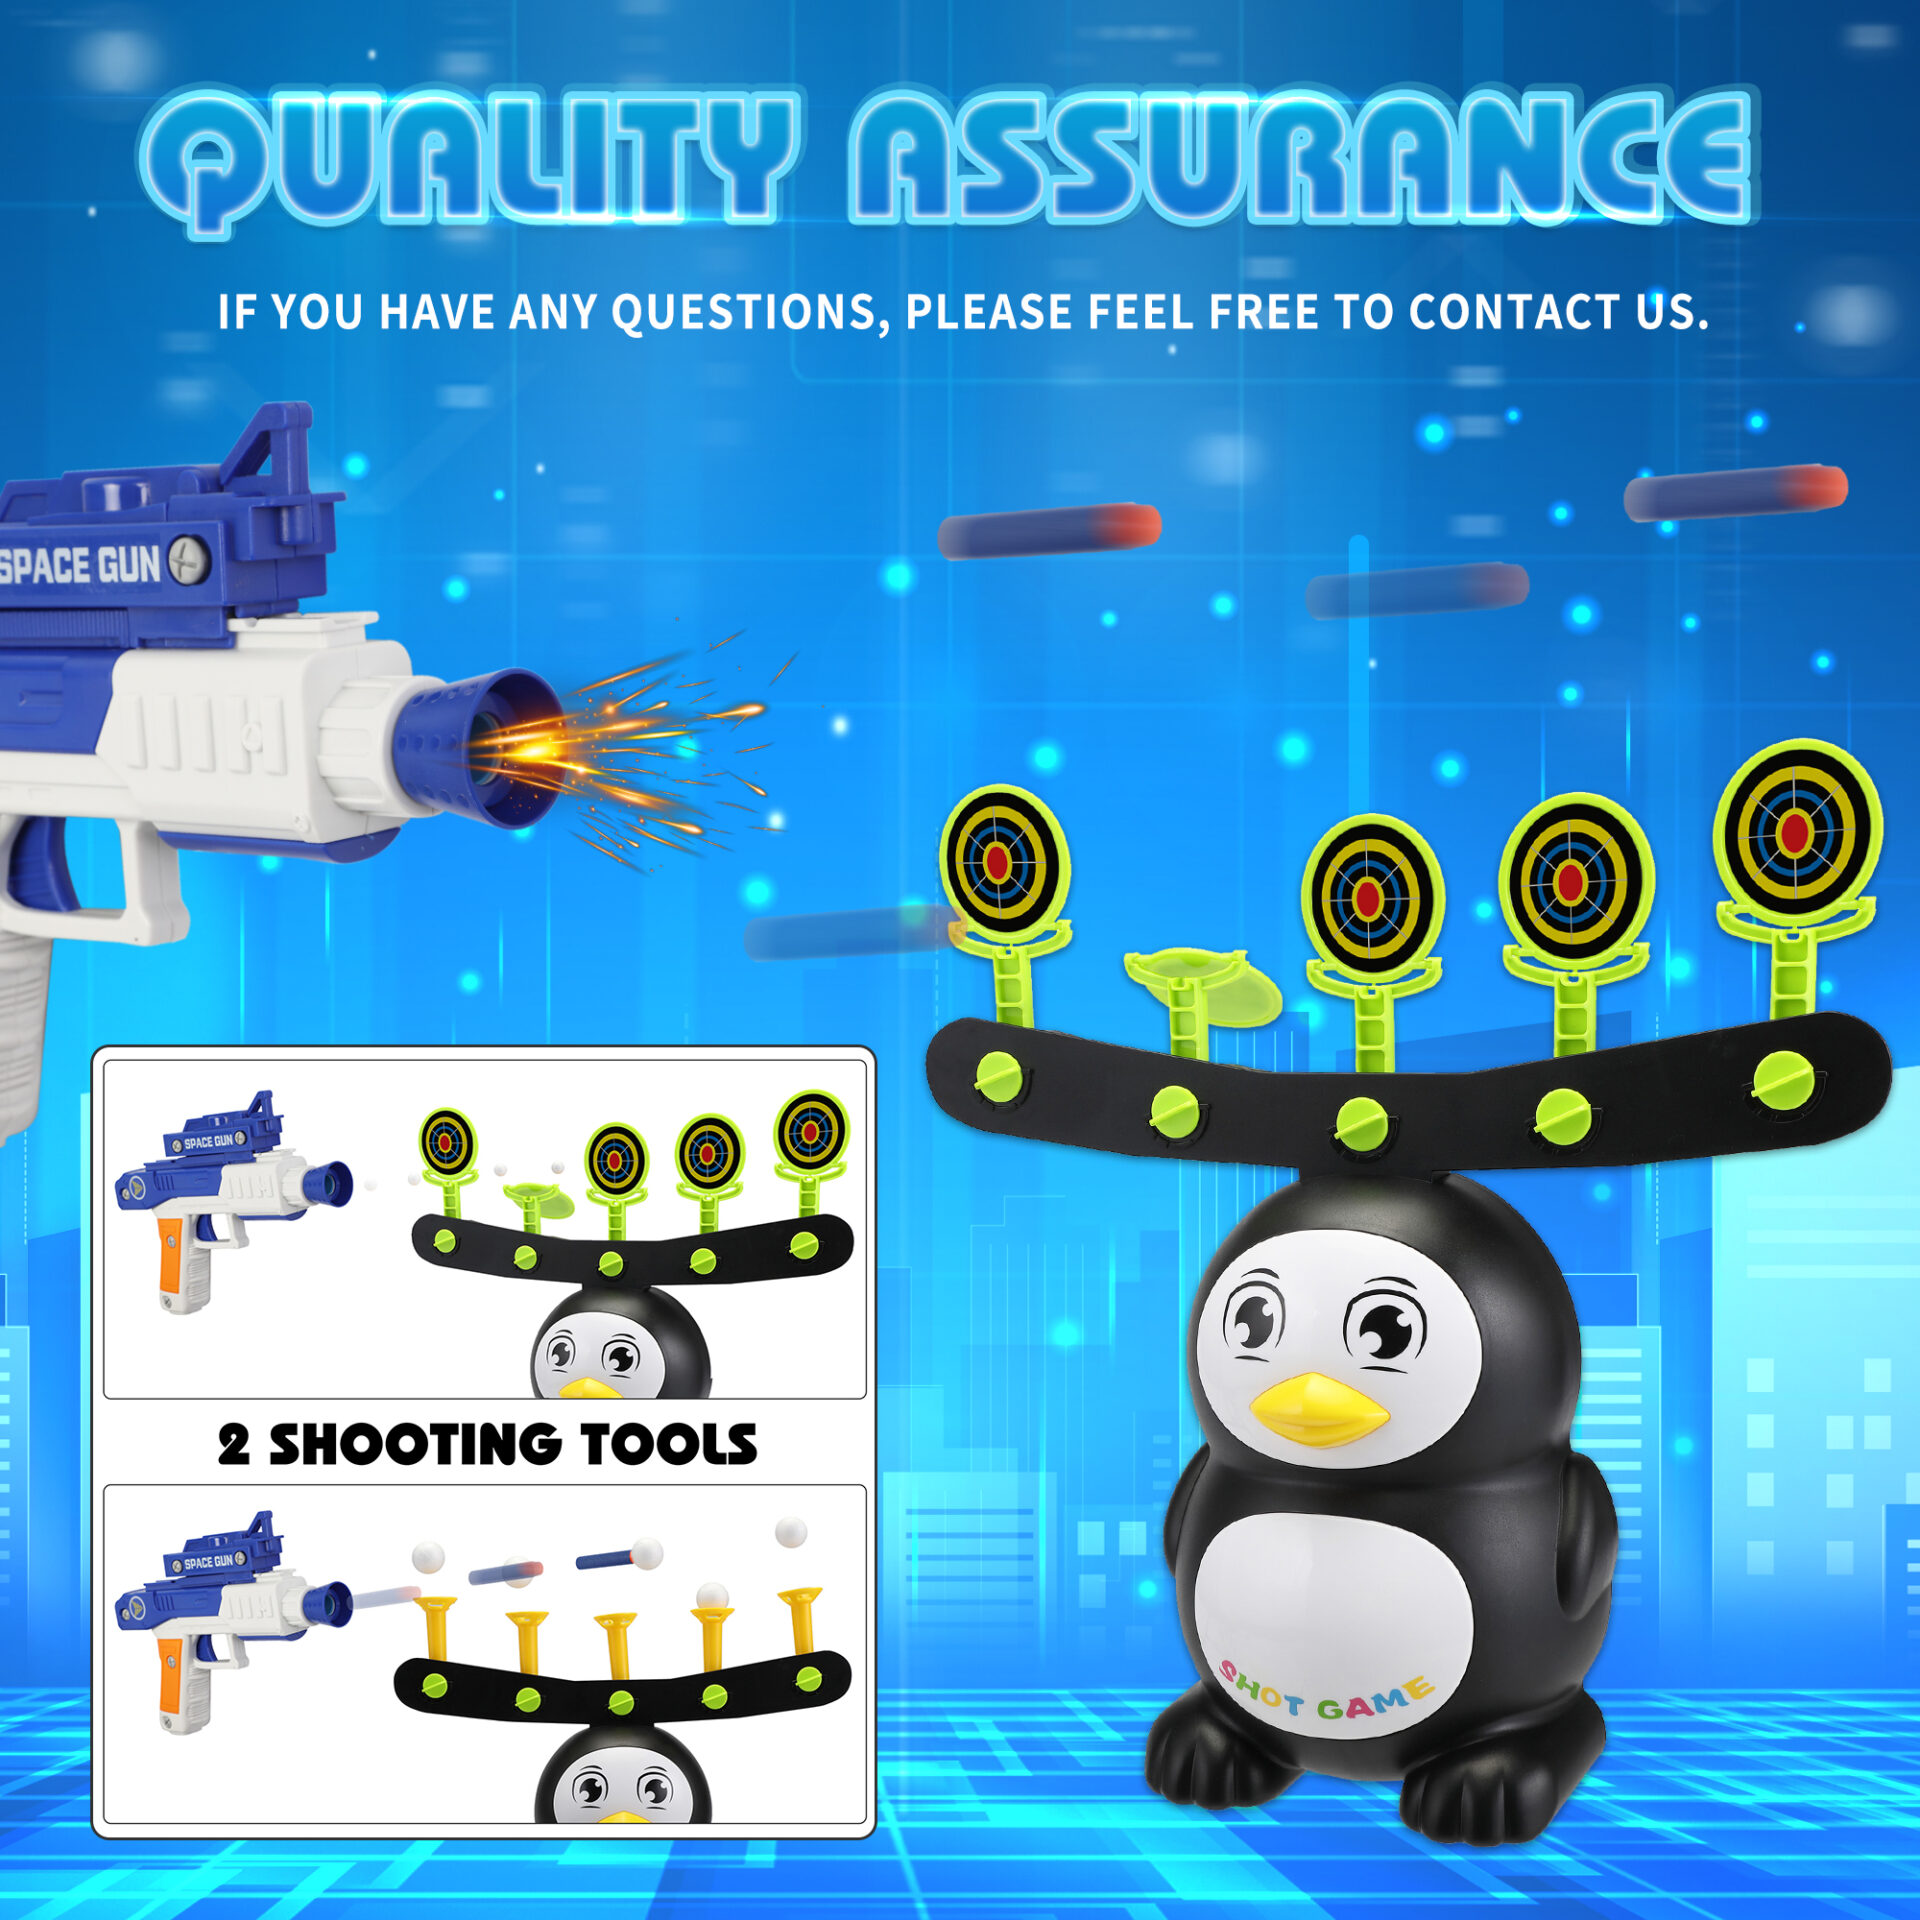 Penguin Shooting Games Target Practice Toys for Kids 4 7